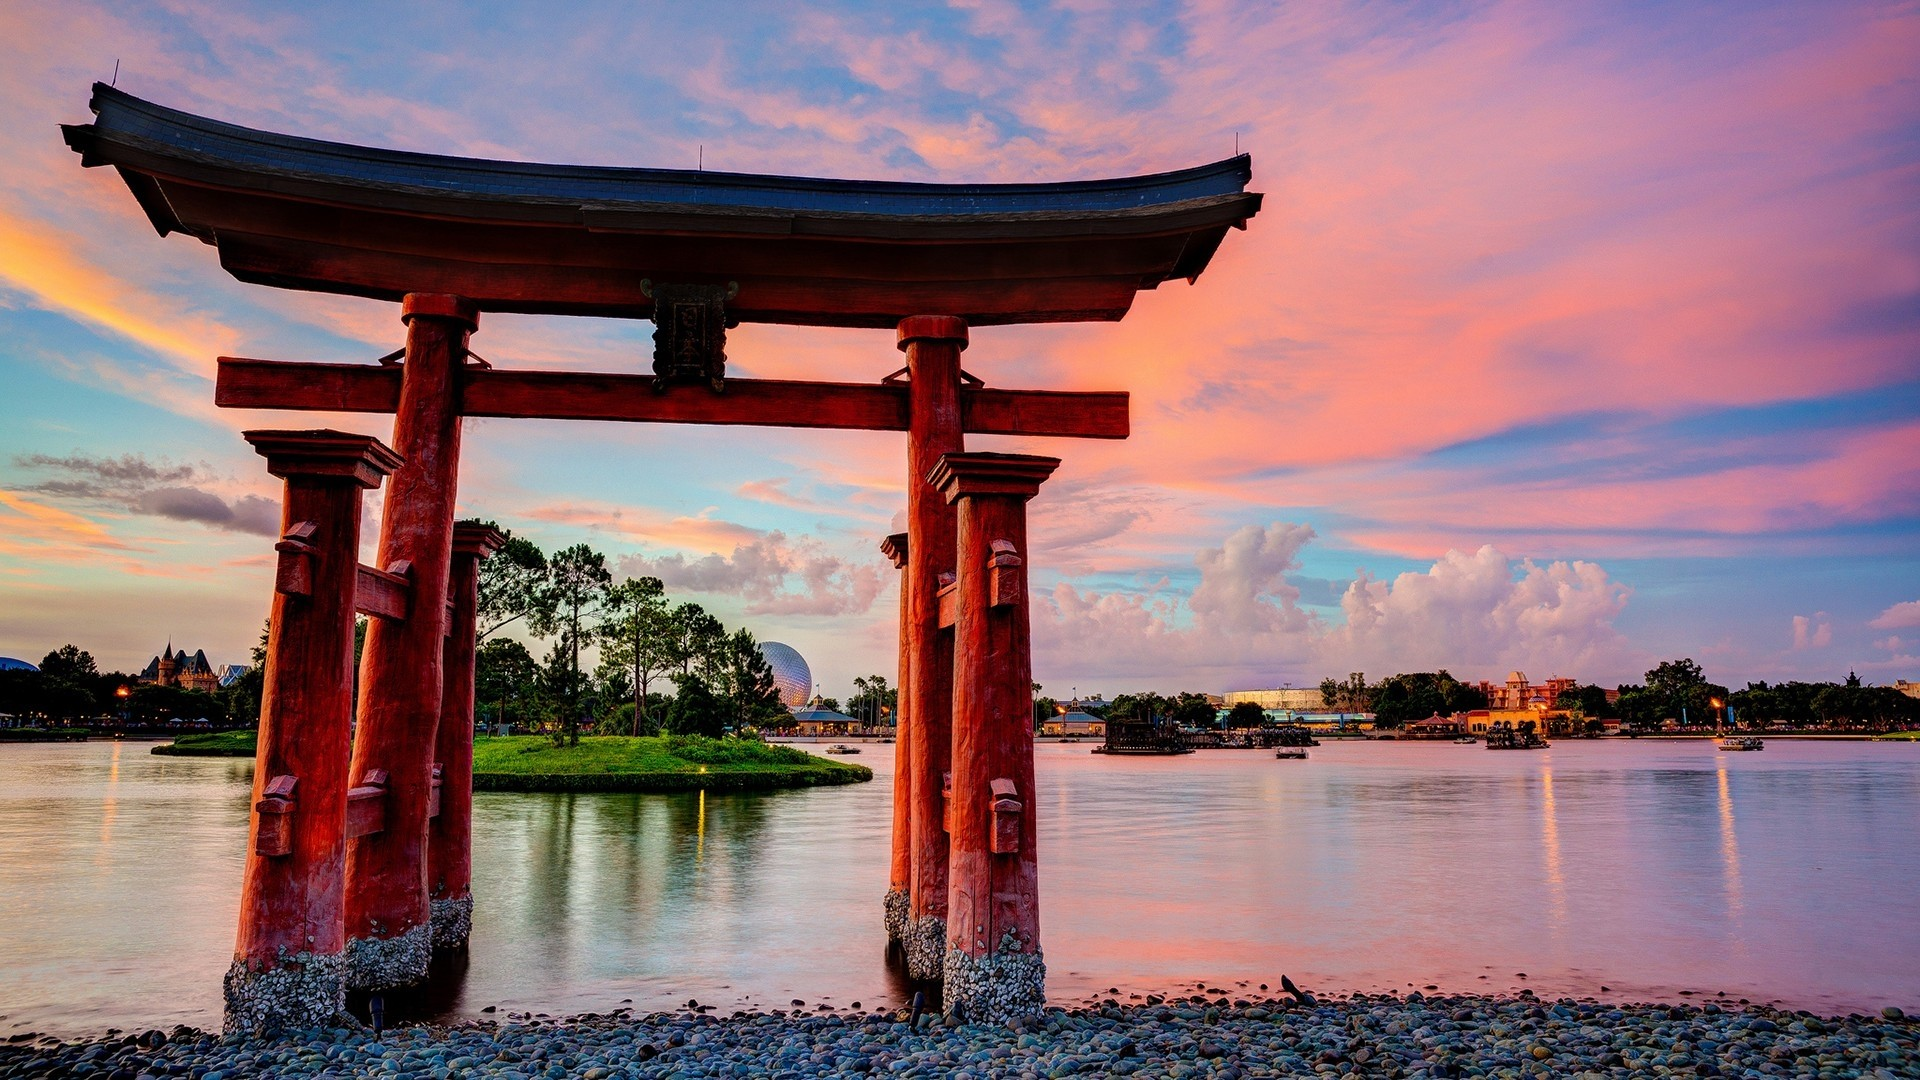 Res: 1920x1080, Exquisite architecture and nature HD Desktop Wallpaper Very beautiful  scenery and exquisite architecture in Japan.